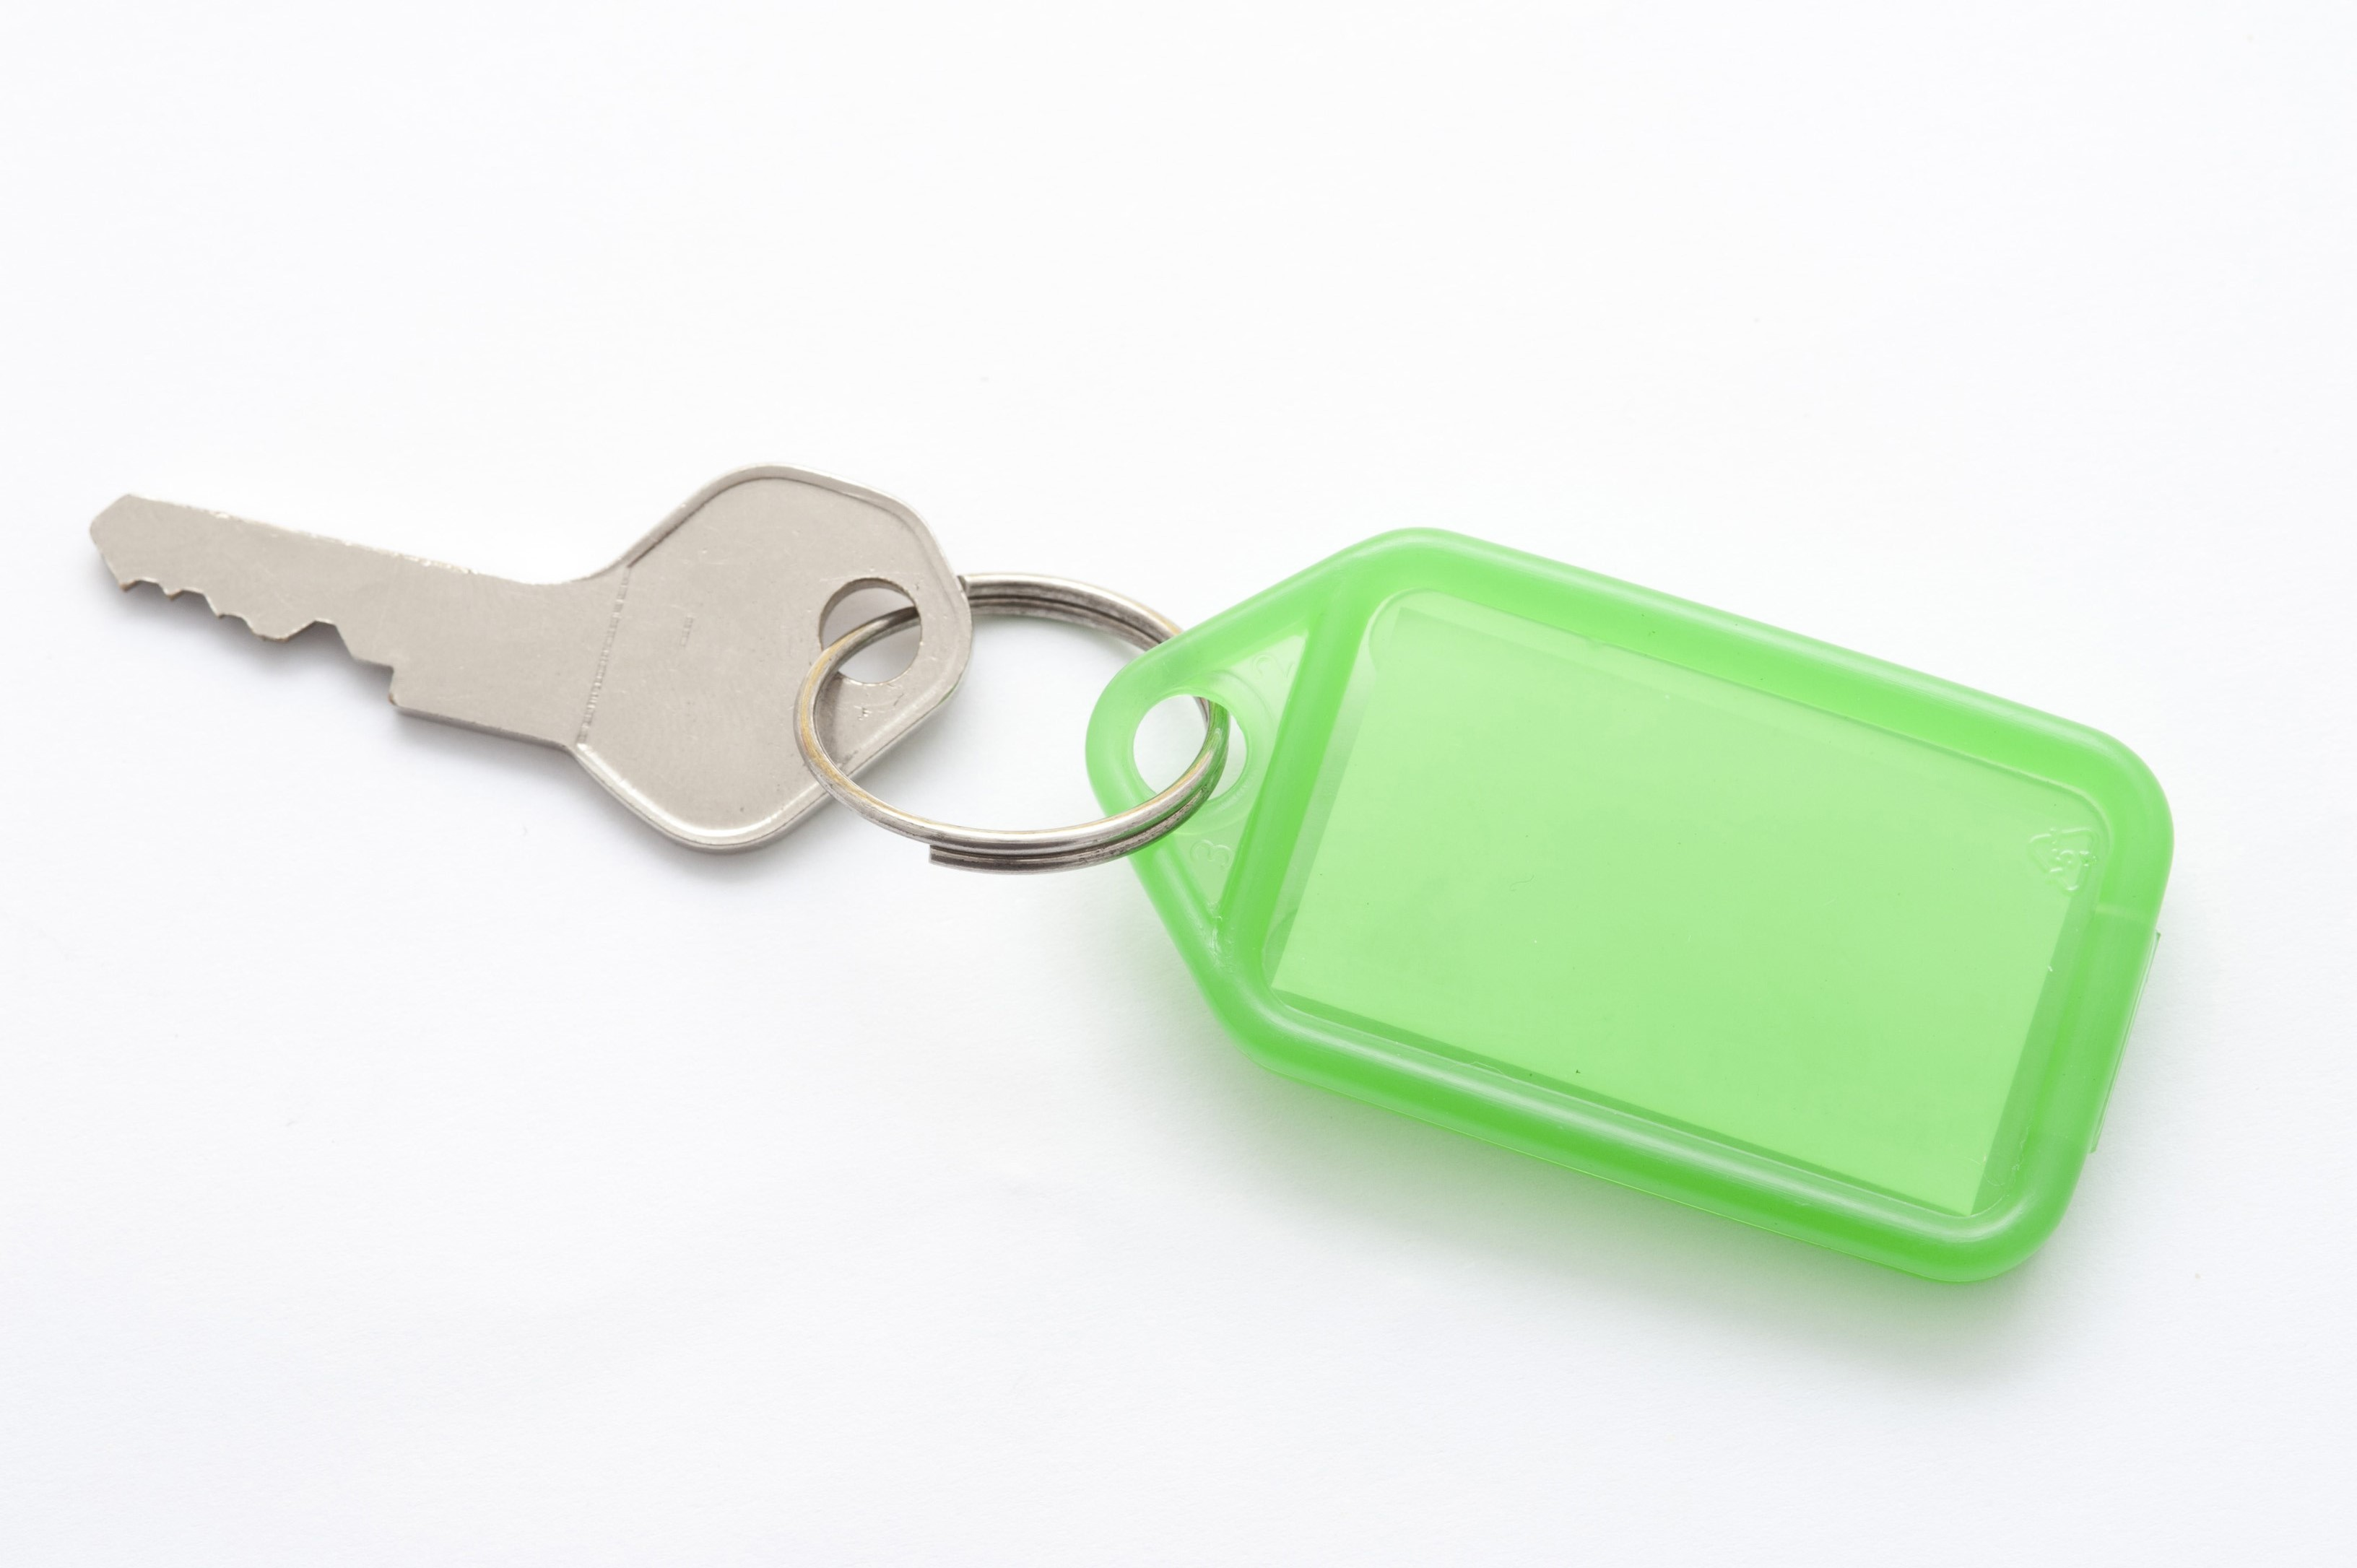 Small silver metal key attached to a blank green plastic key tag with copyspace for your text, on a white background